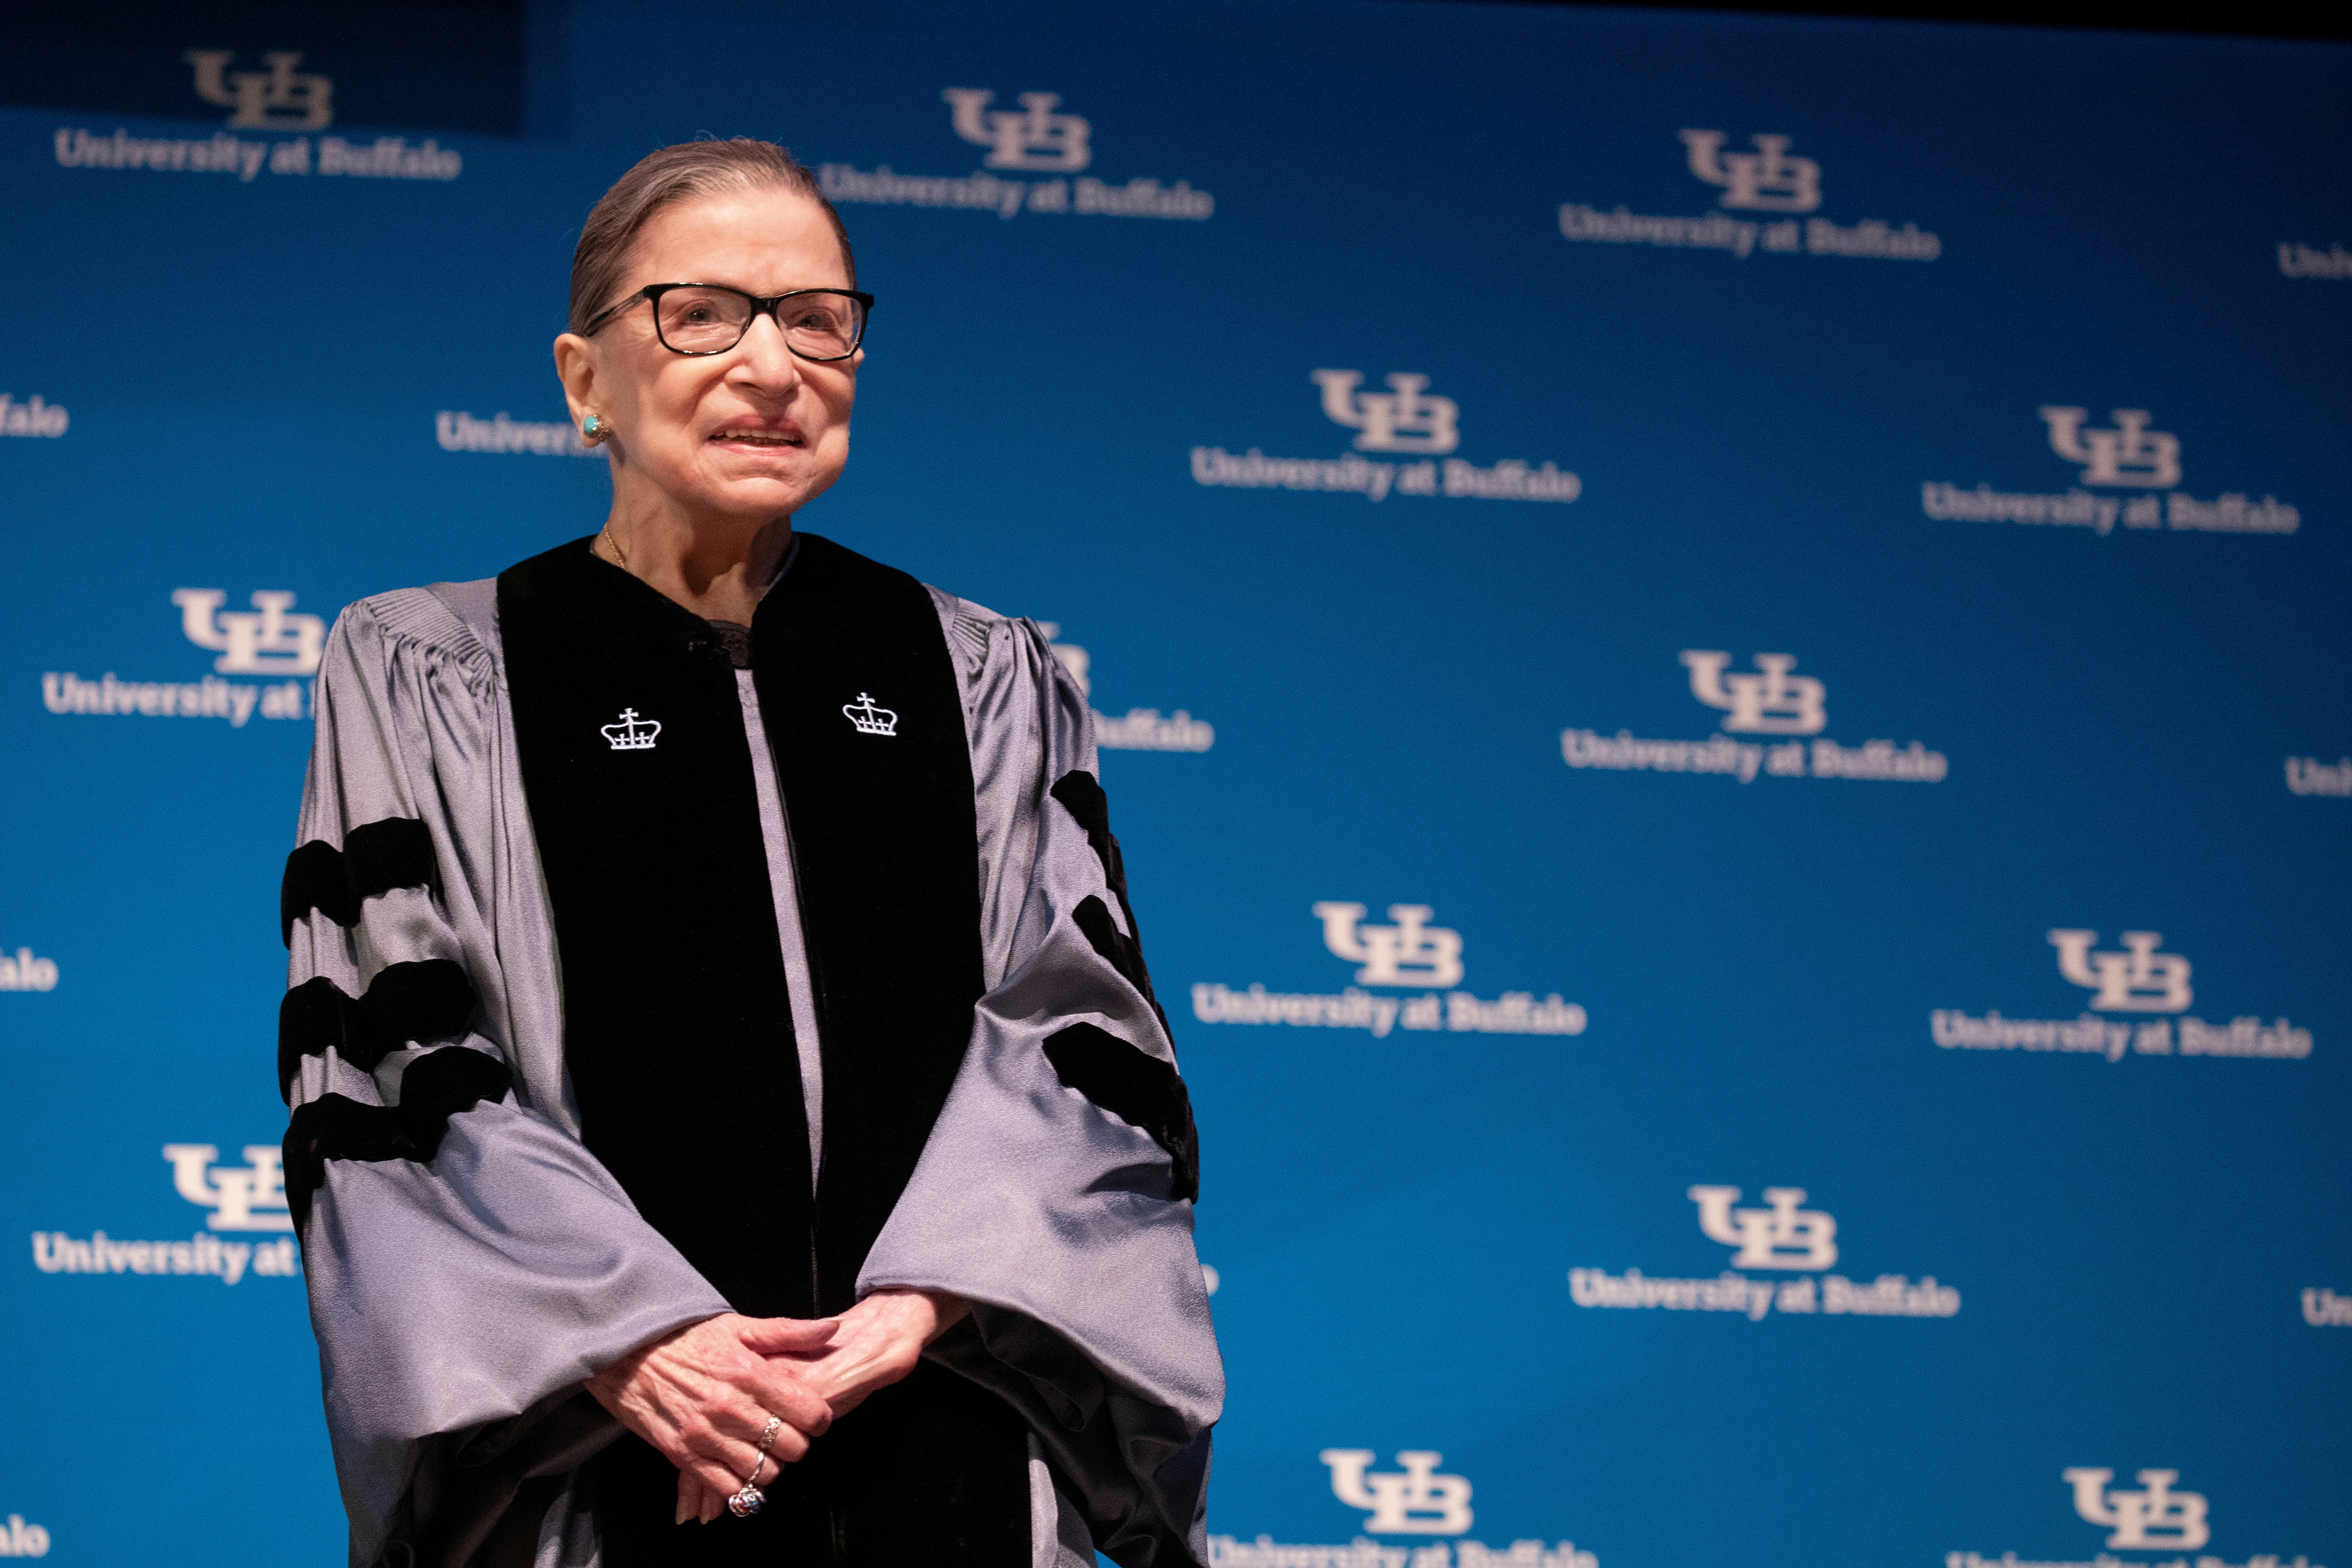 2019 08 26T190729Z 1791193445 RC1A5ECEAC20 RTRMADP 3 USA COURT GINSBURG.'